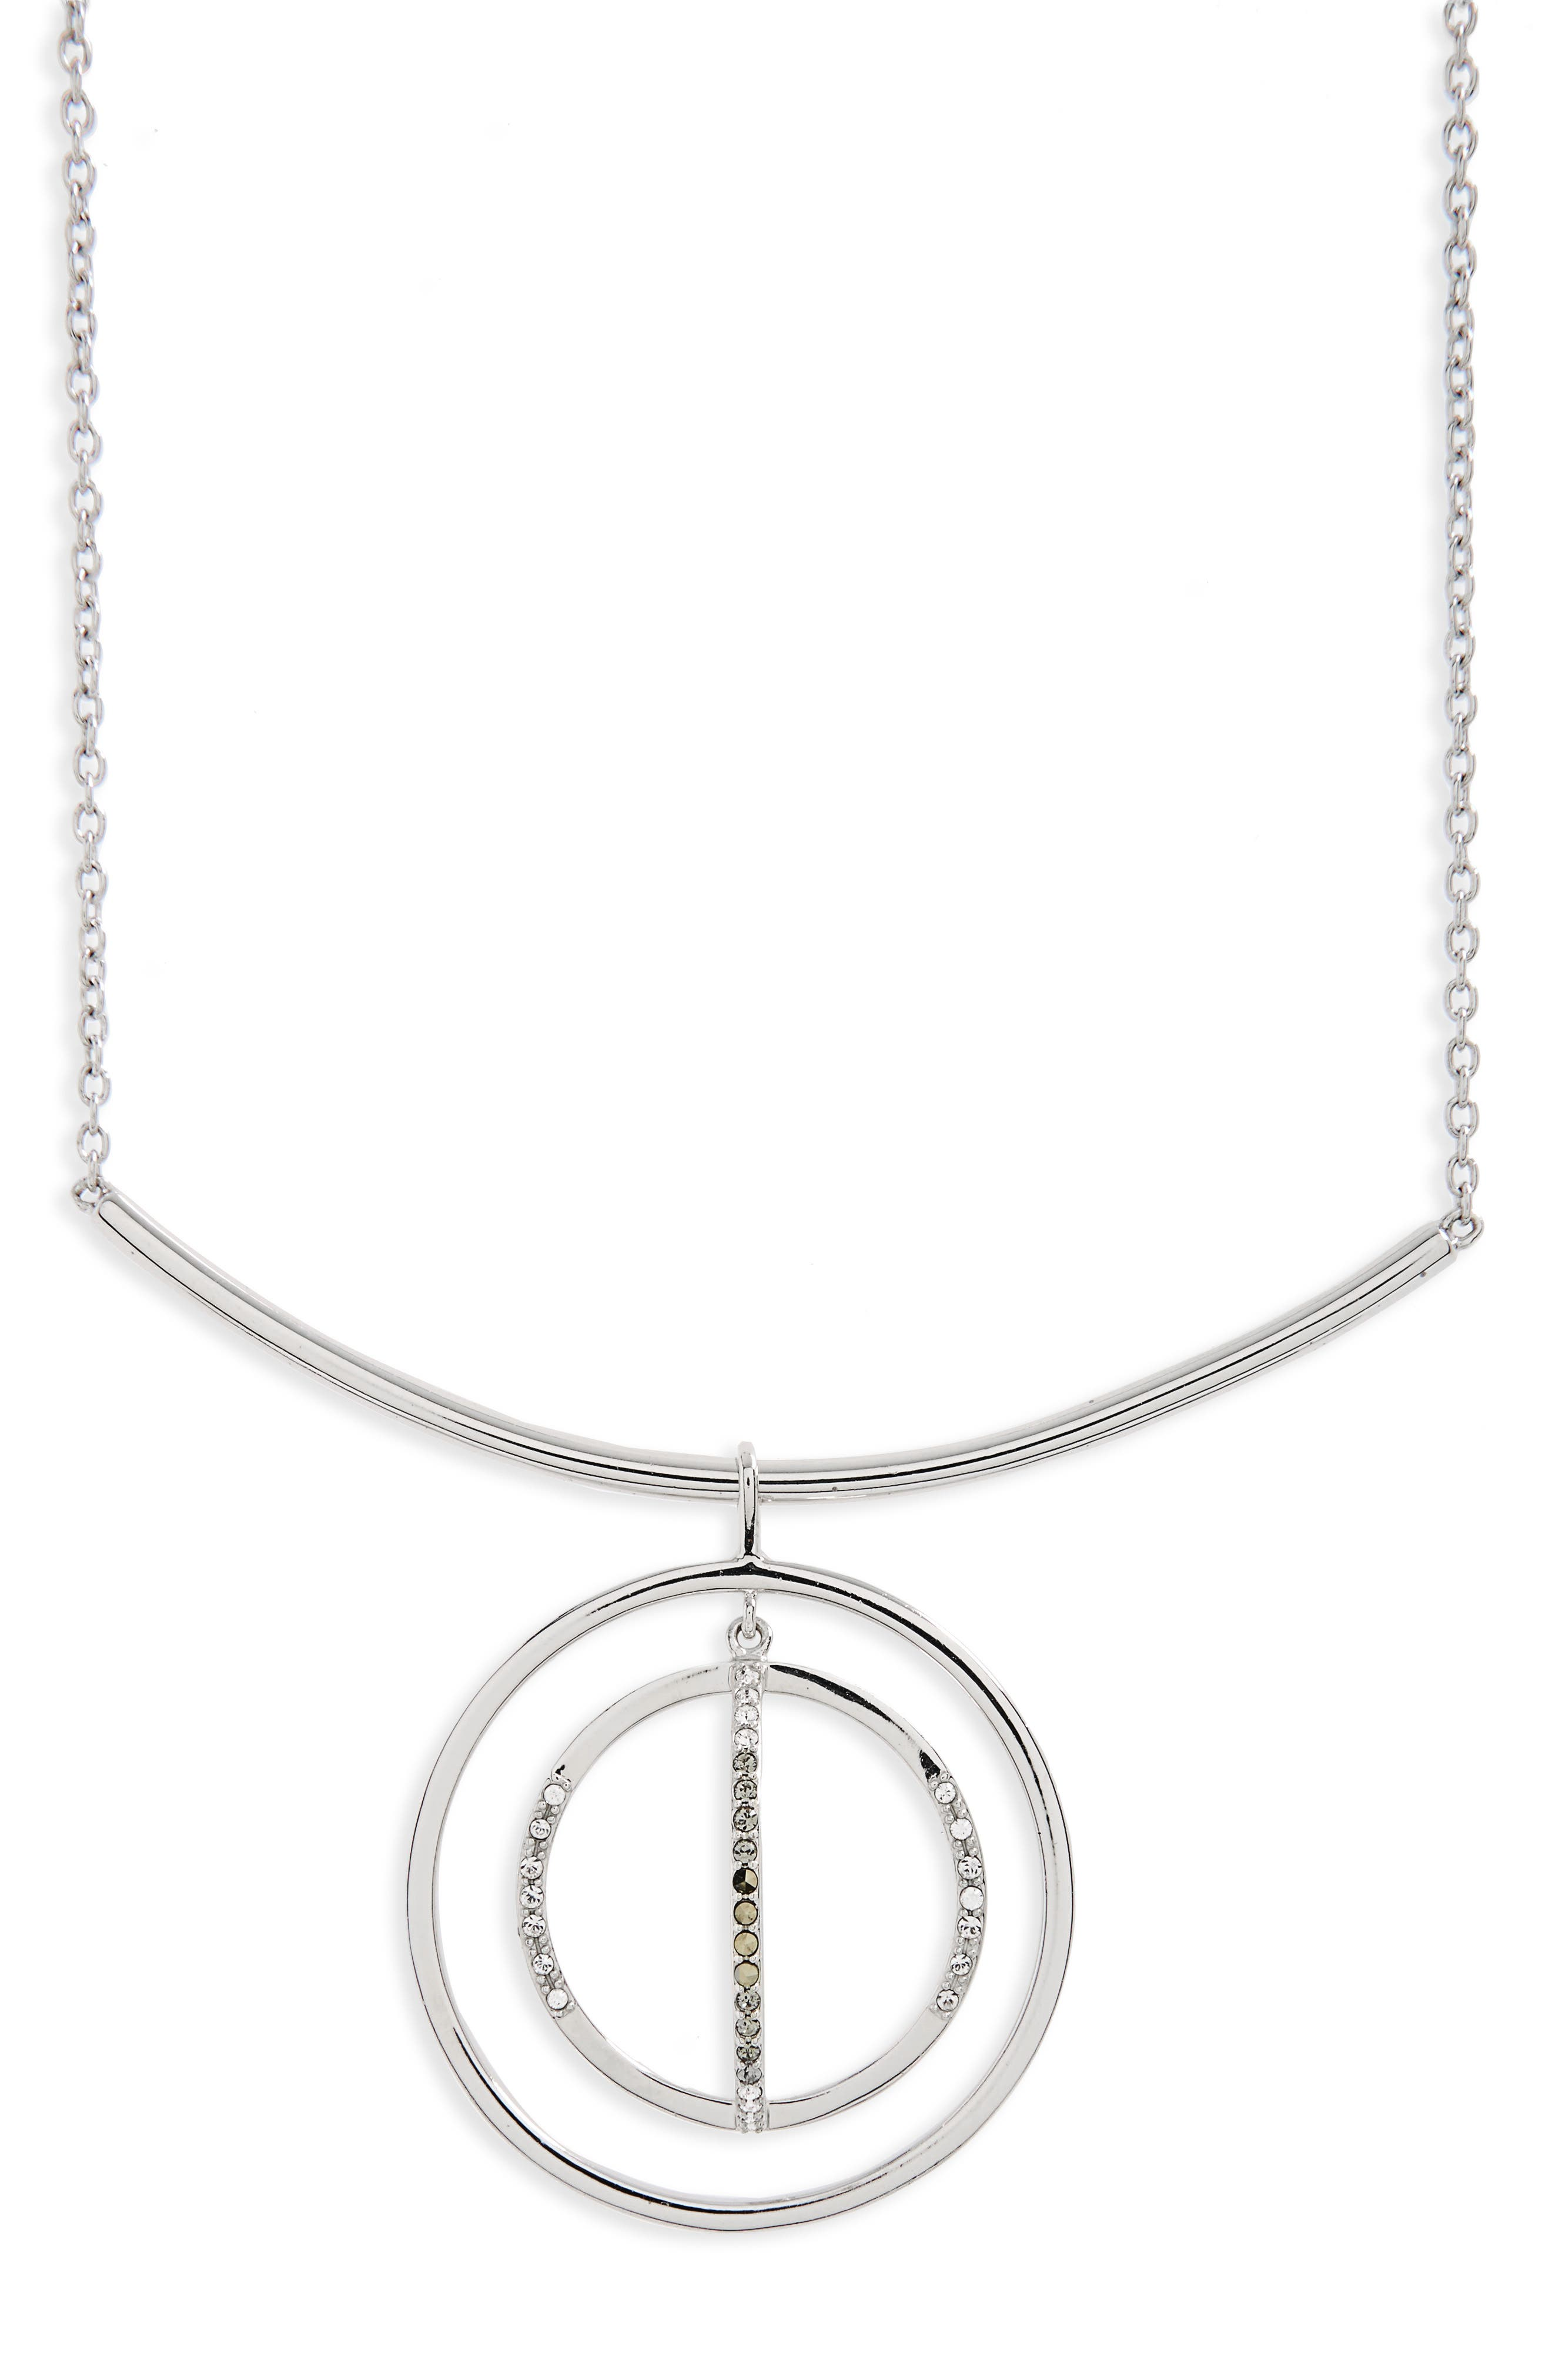 Main Image - Judith Jack Silver Sparkle Circle Pendant Necklace